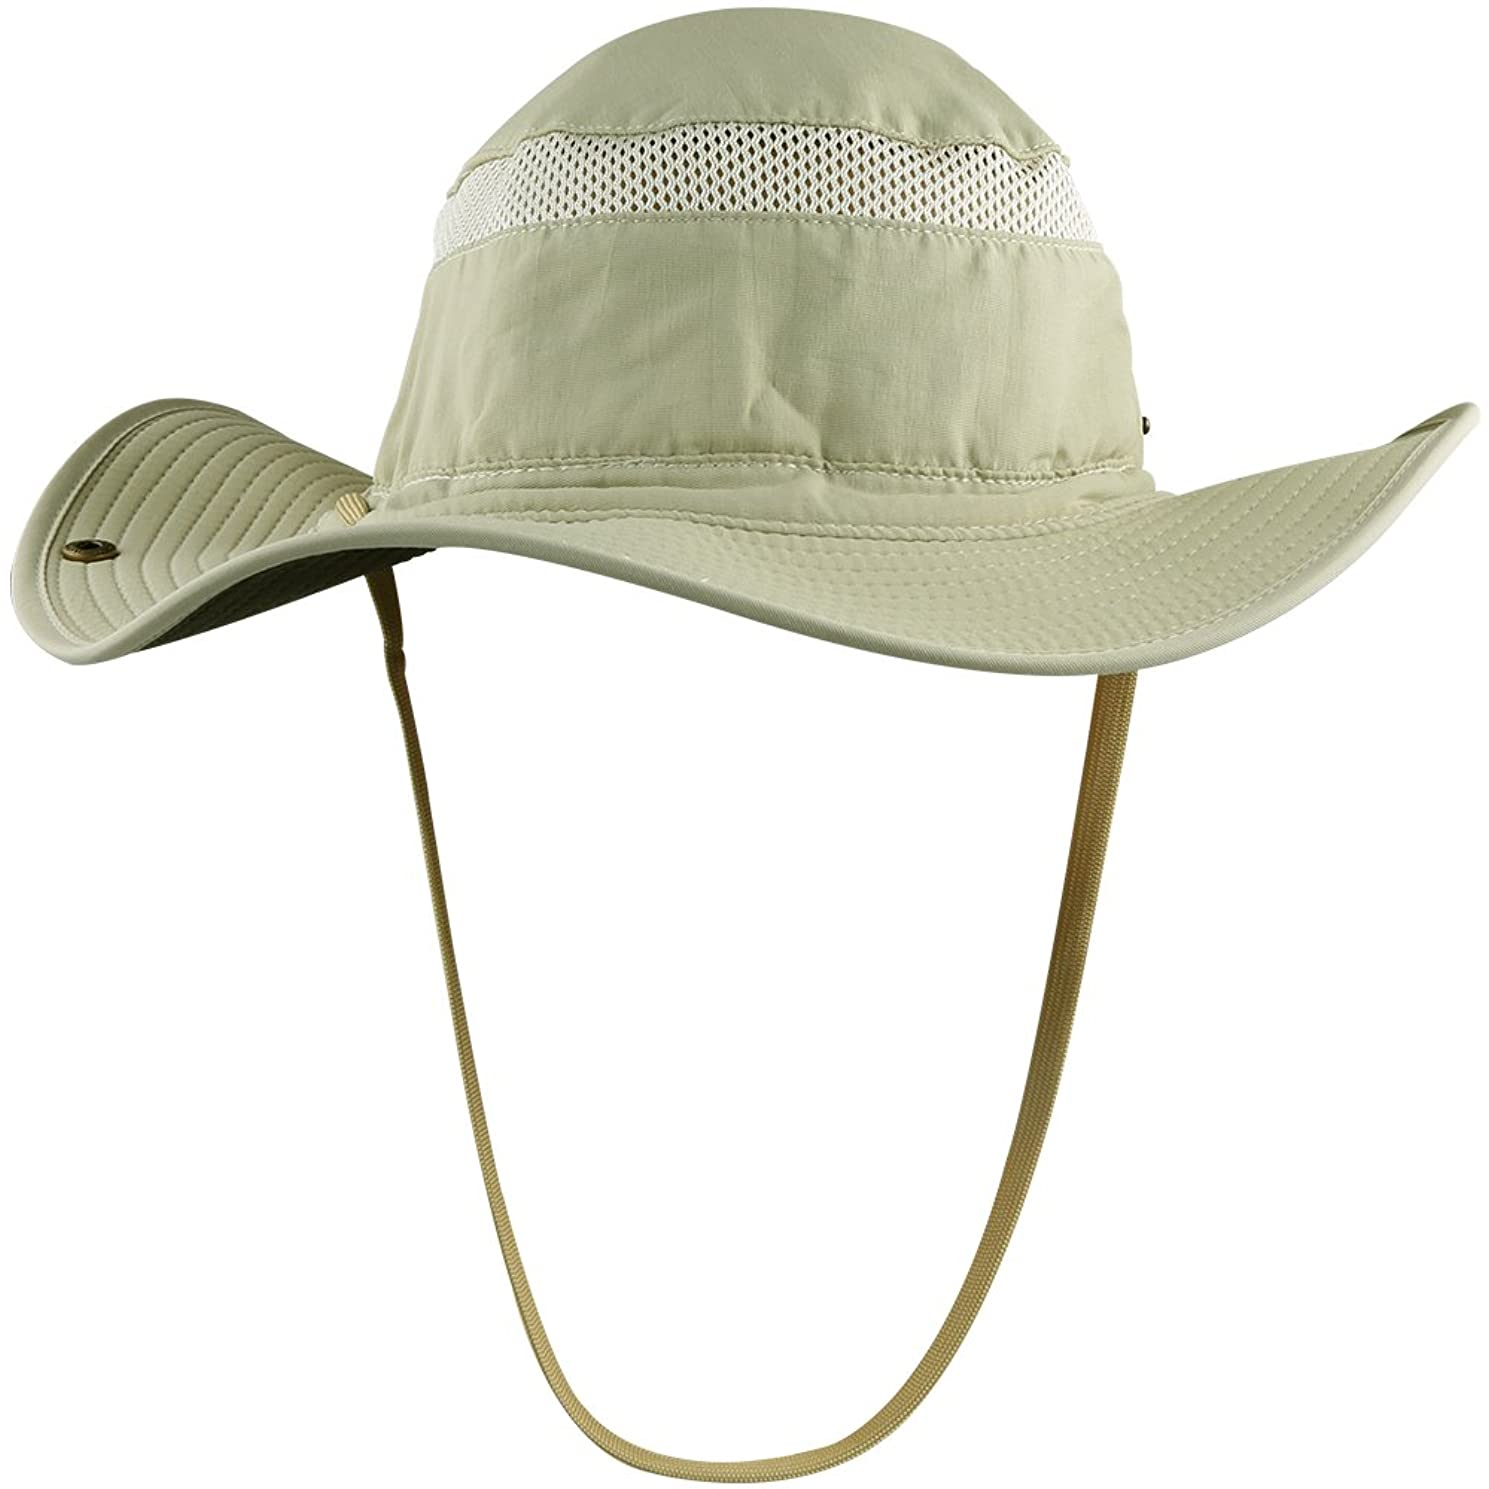 AKASO Sun Hat for Men & Women - Wide Brim Bucket Hat, Breathable Boonie Hat,UPF 50+ Sun Protection Fishing Hat for Camping Hiking Hunting Golf